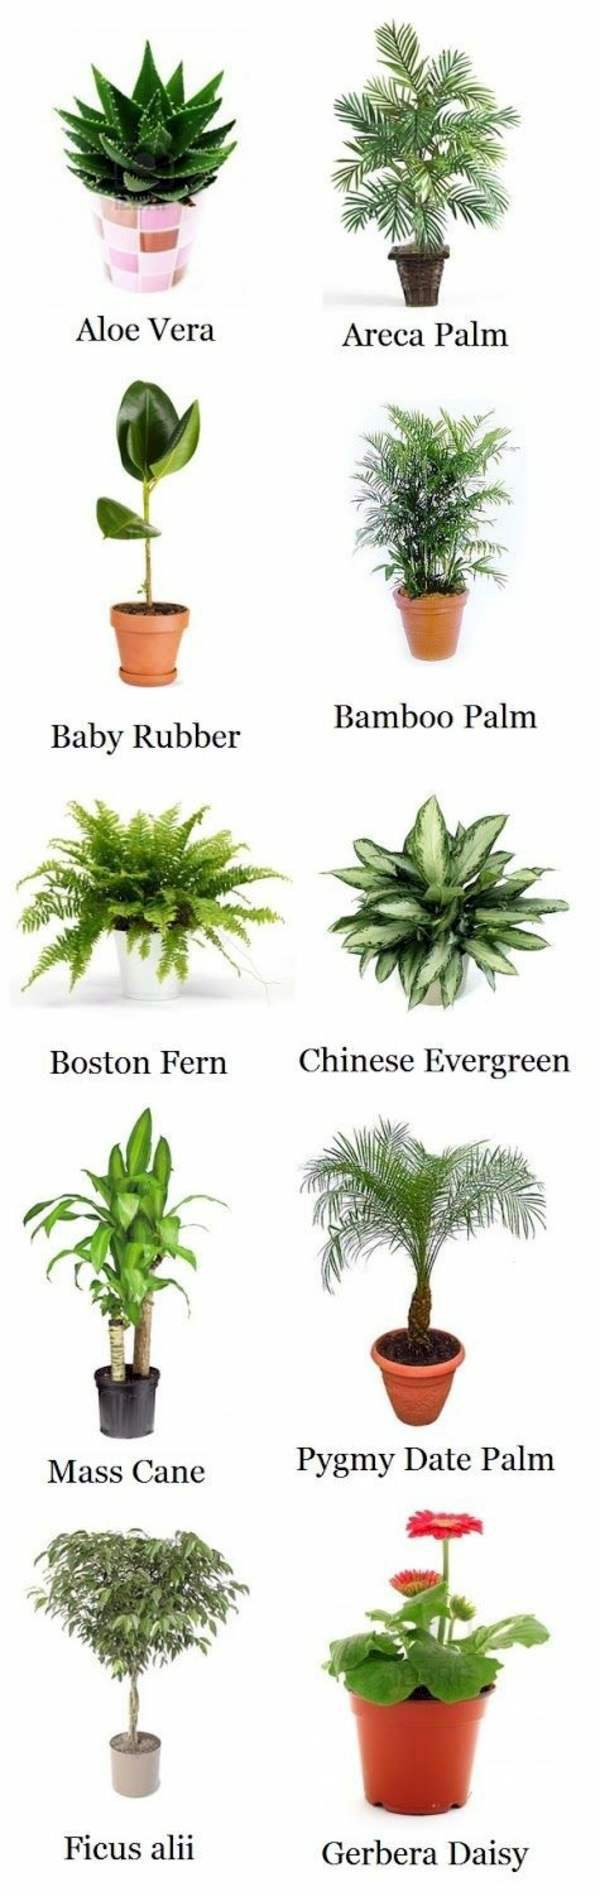 Types Of Tree Palm House Plant List on house plant umbrella tree, indoor palm plants types, like palm plants types, house with palm trees, dracaena house plant types, house plants that look like trees, lady palm tree types, house plant schefflera actinophylla, indoor ponytail palm tree types, small indoor palm tree types, identify tree types, house plants palms identify, house plants at lowe's, house plant rubber tree, south florida palm tree types, double trunk palm tree types, home plants types, house plant banana tree, palm names types,